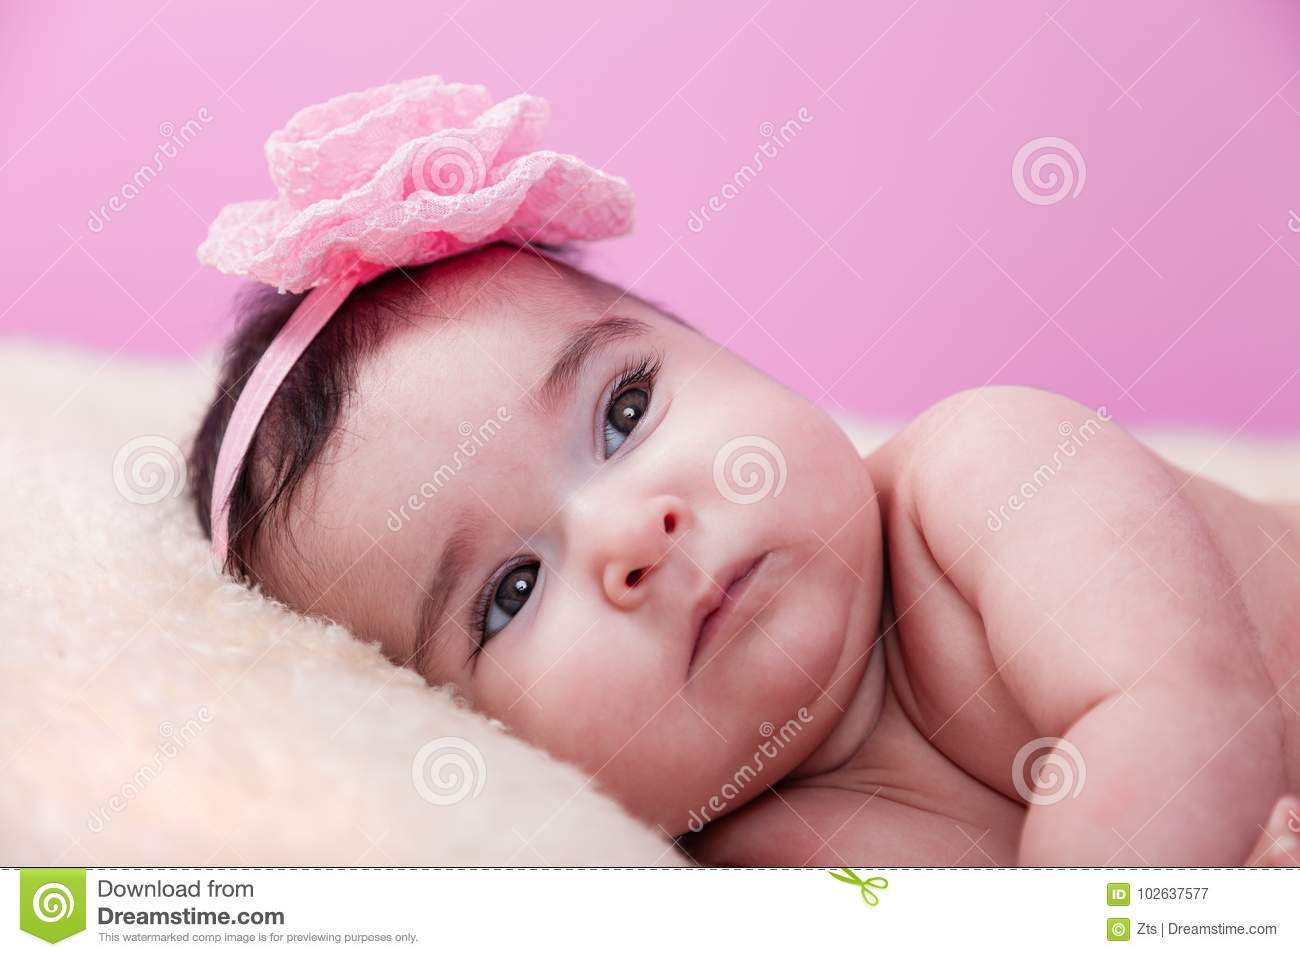 cute, pretty, happy, chubby baby girl serious portrait, naked or